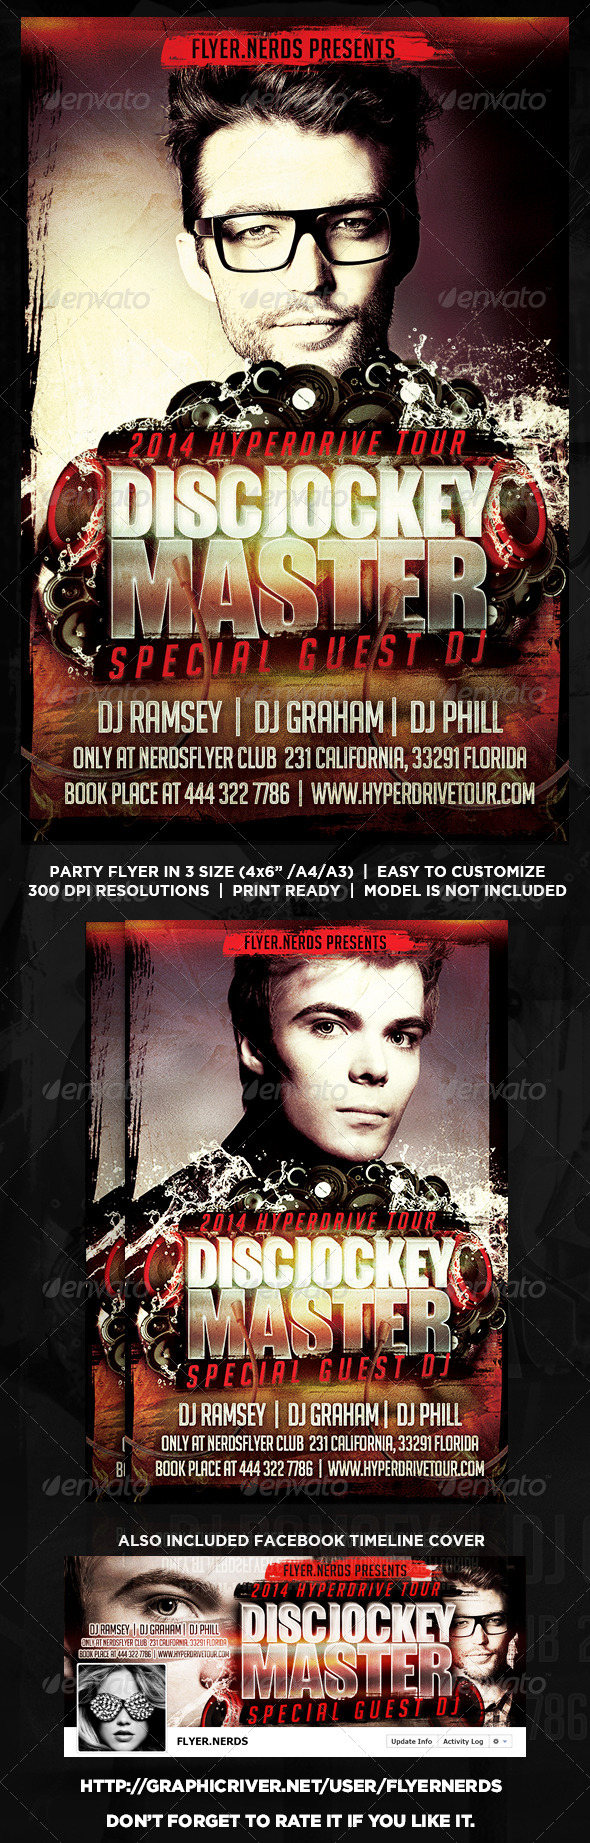 GraphicRiver DiscJockey Master 2014 Party Flyer 8399472